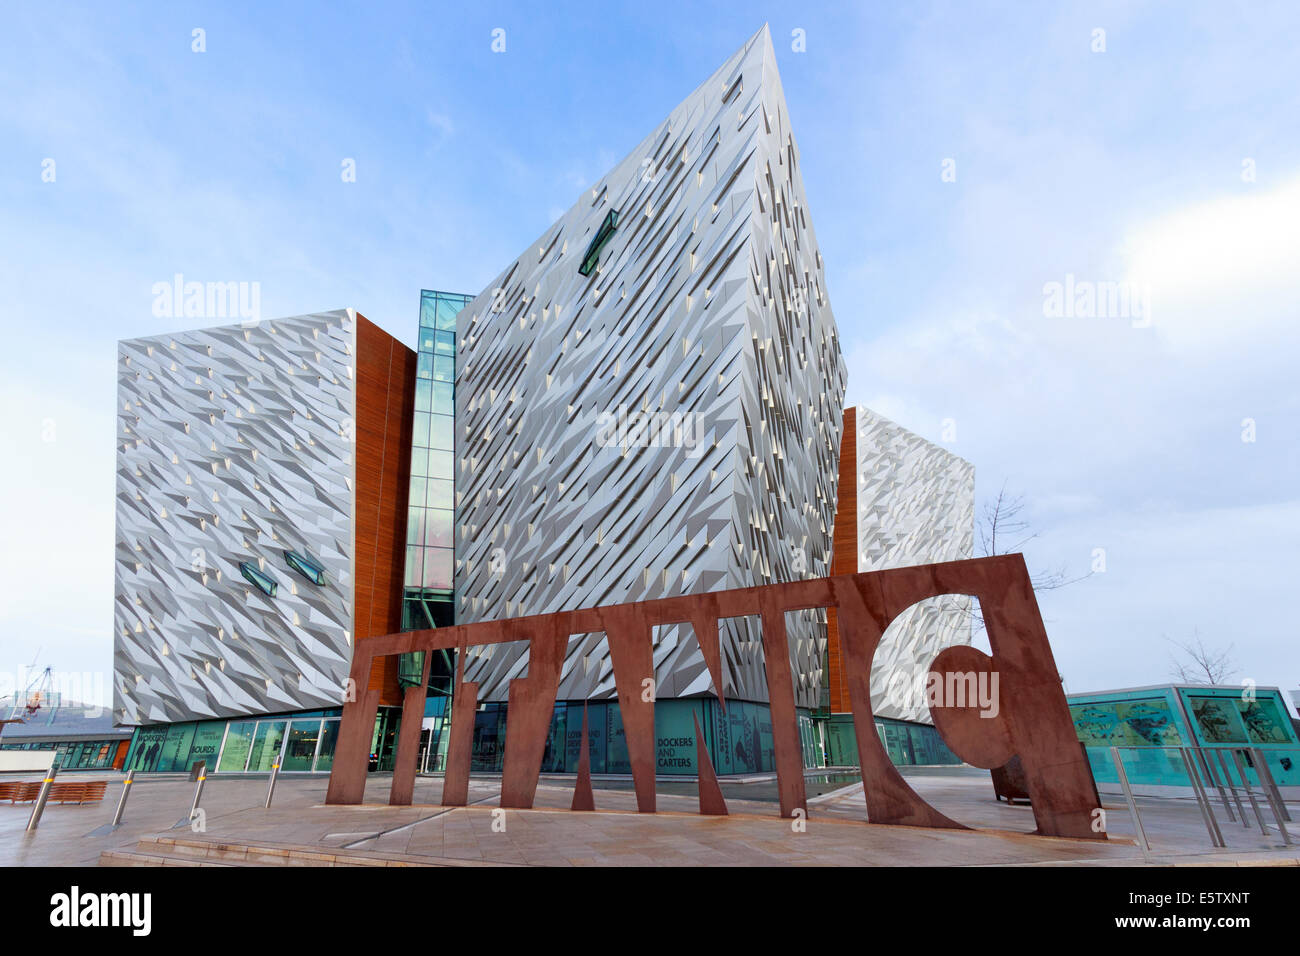 The Titanic visitor attraction and a monument in Belfast, Northern Ireland. - Stock Image